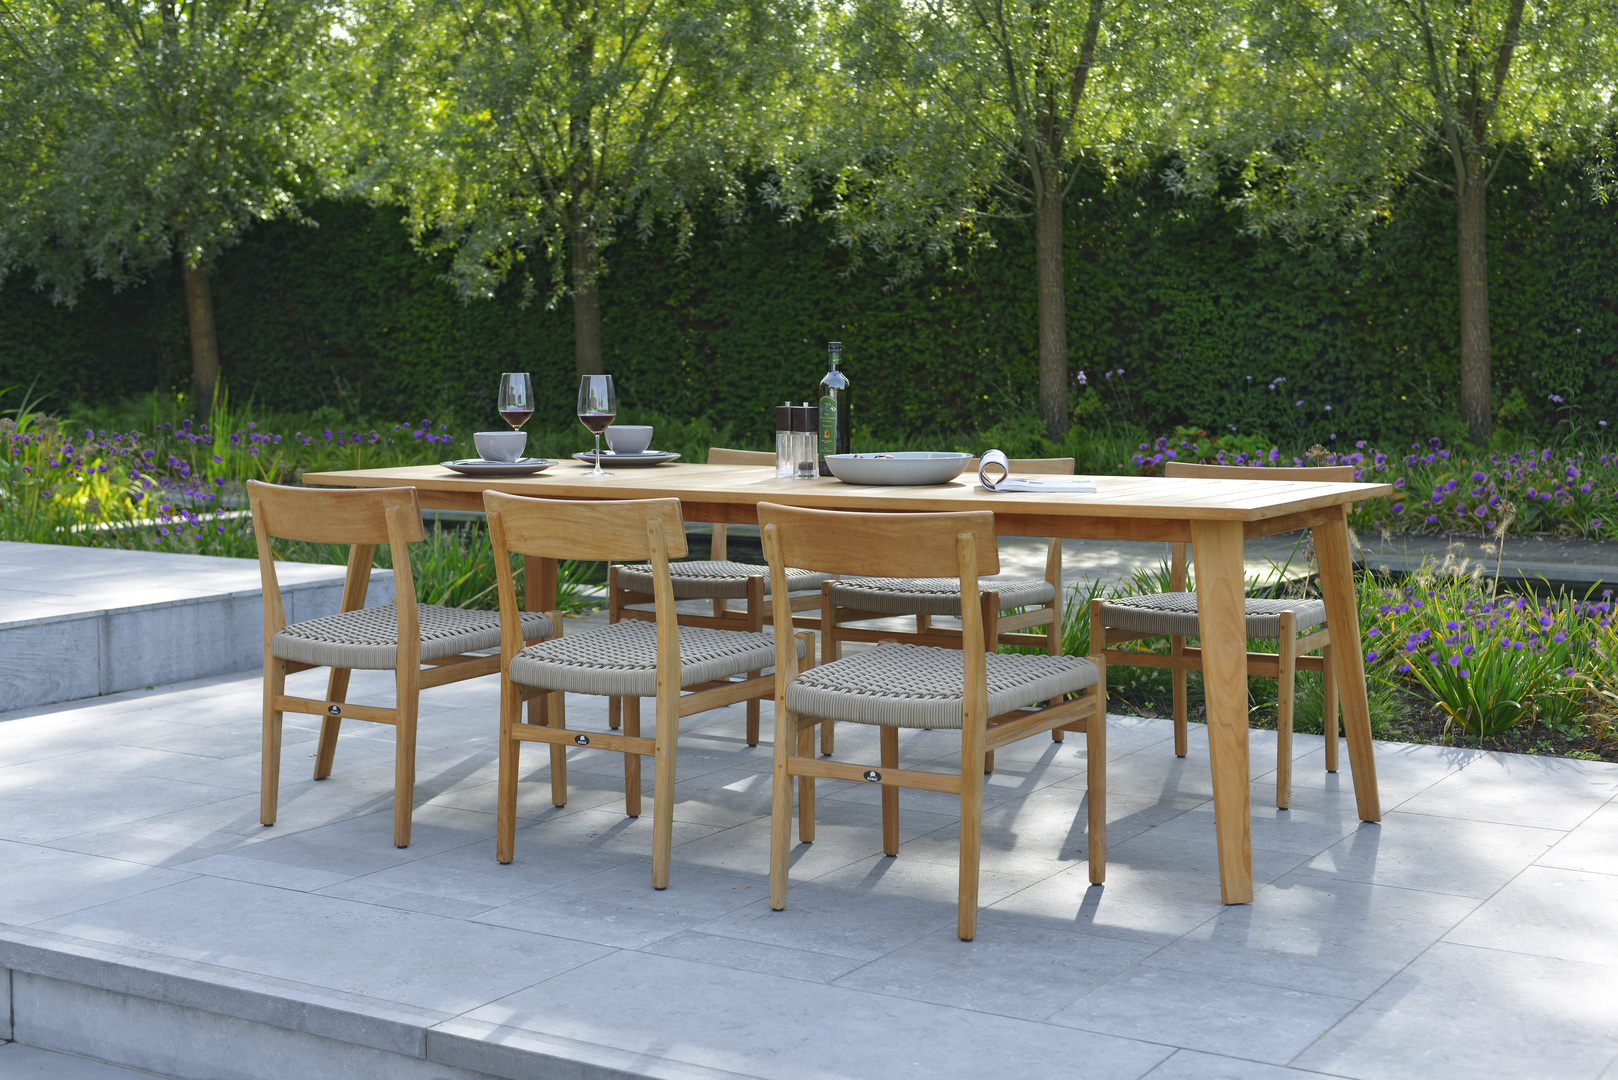 Borek Rope Verdasio chair without armrests Bellinzona  table.jpg